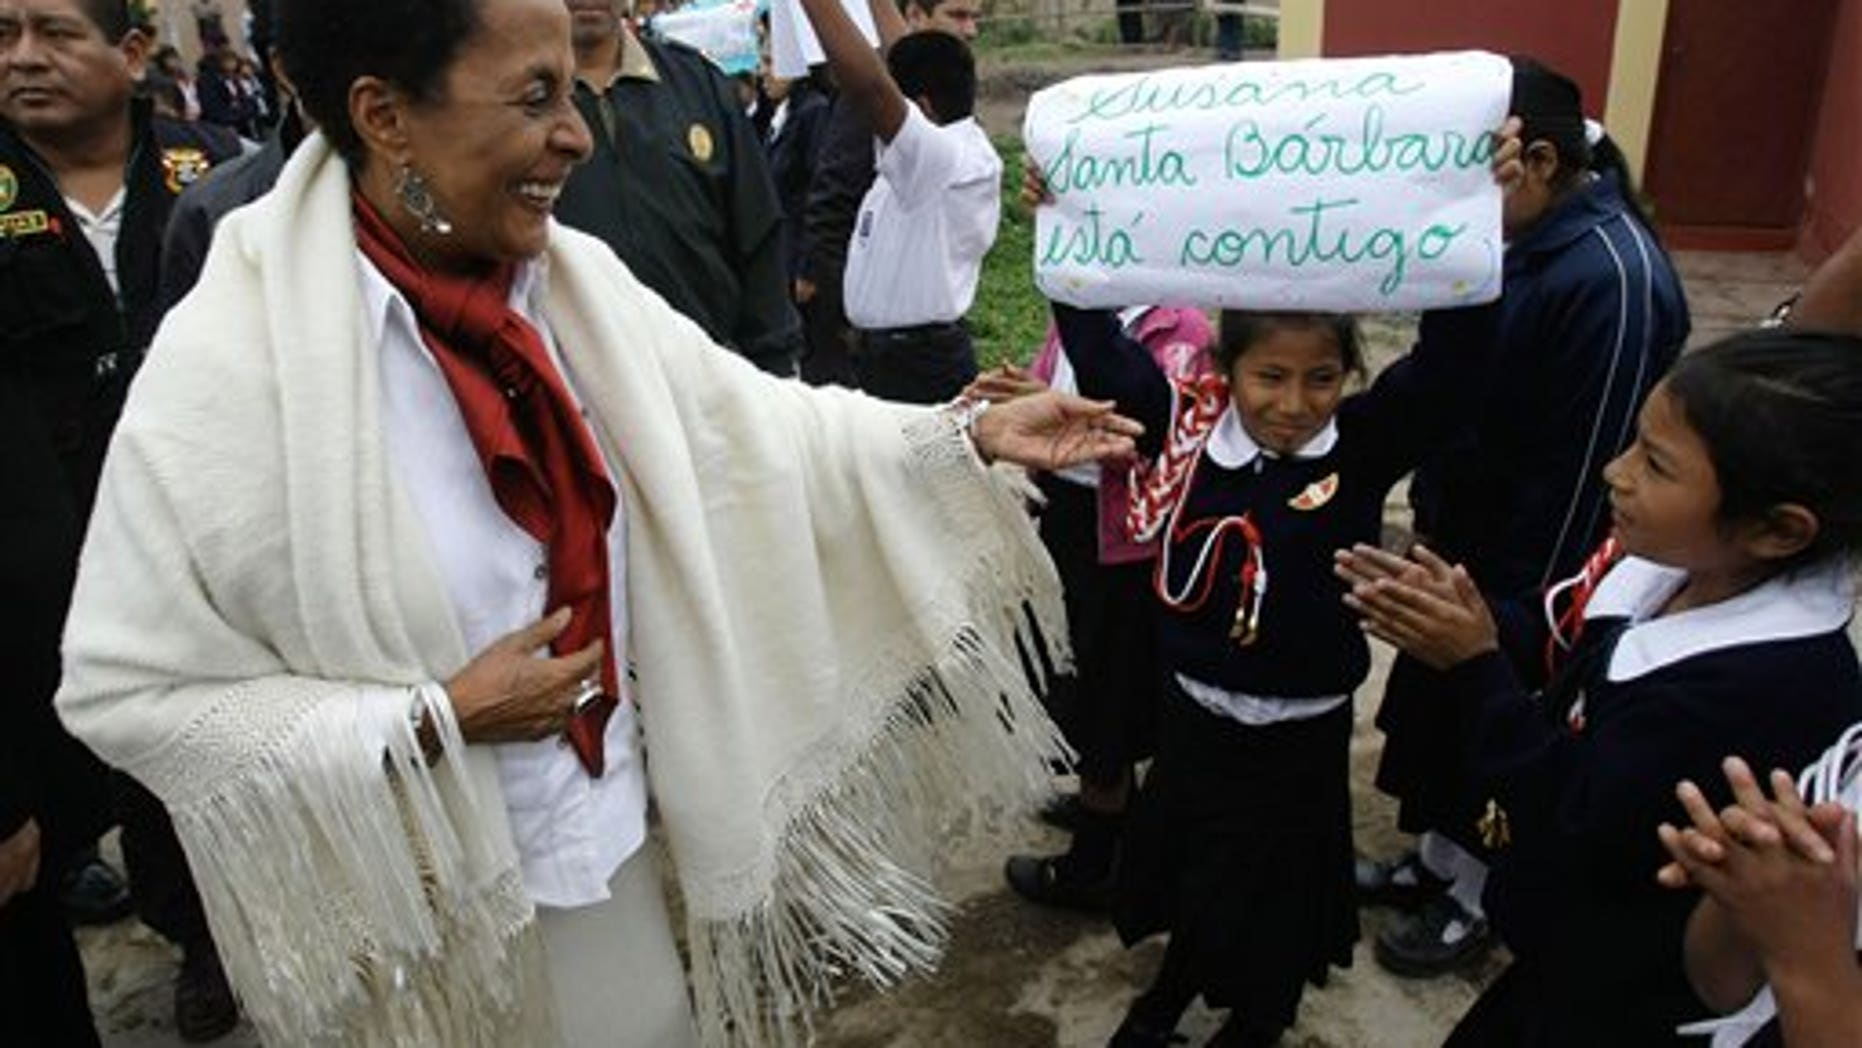 In this photo taken Aug. 29, 2011, Peru's Culture Minister Susana Baca greets students during a visit to a school in San Luis de Canete, Peru. Baca, 67, is living testimony to Afro-Peruvians' enduring struggle and she is determined to end the discrimination that made second-class citizens not just of blacks but also of Peru's indigenous. Baca became the Andean nation's first black Cabinet minister in July 2011.  (AP Photo/Karel Navarro)